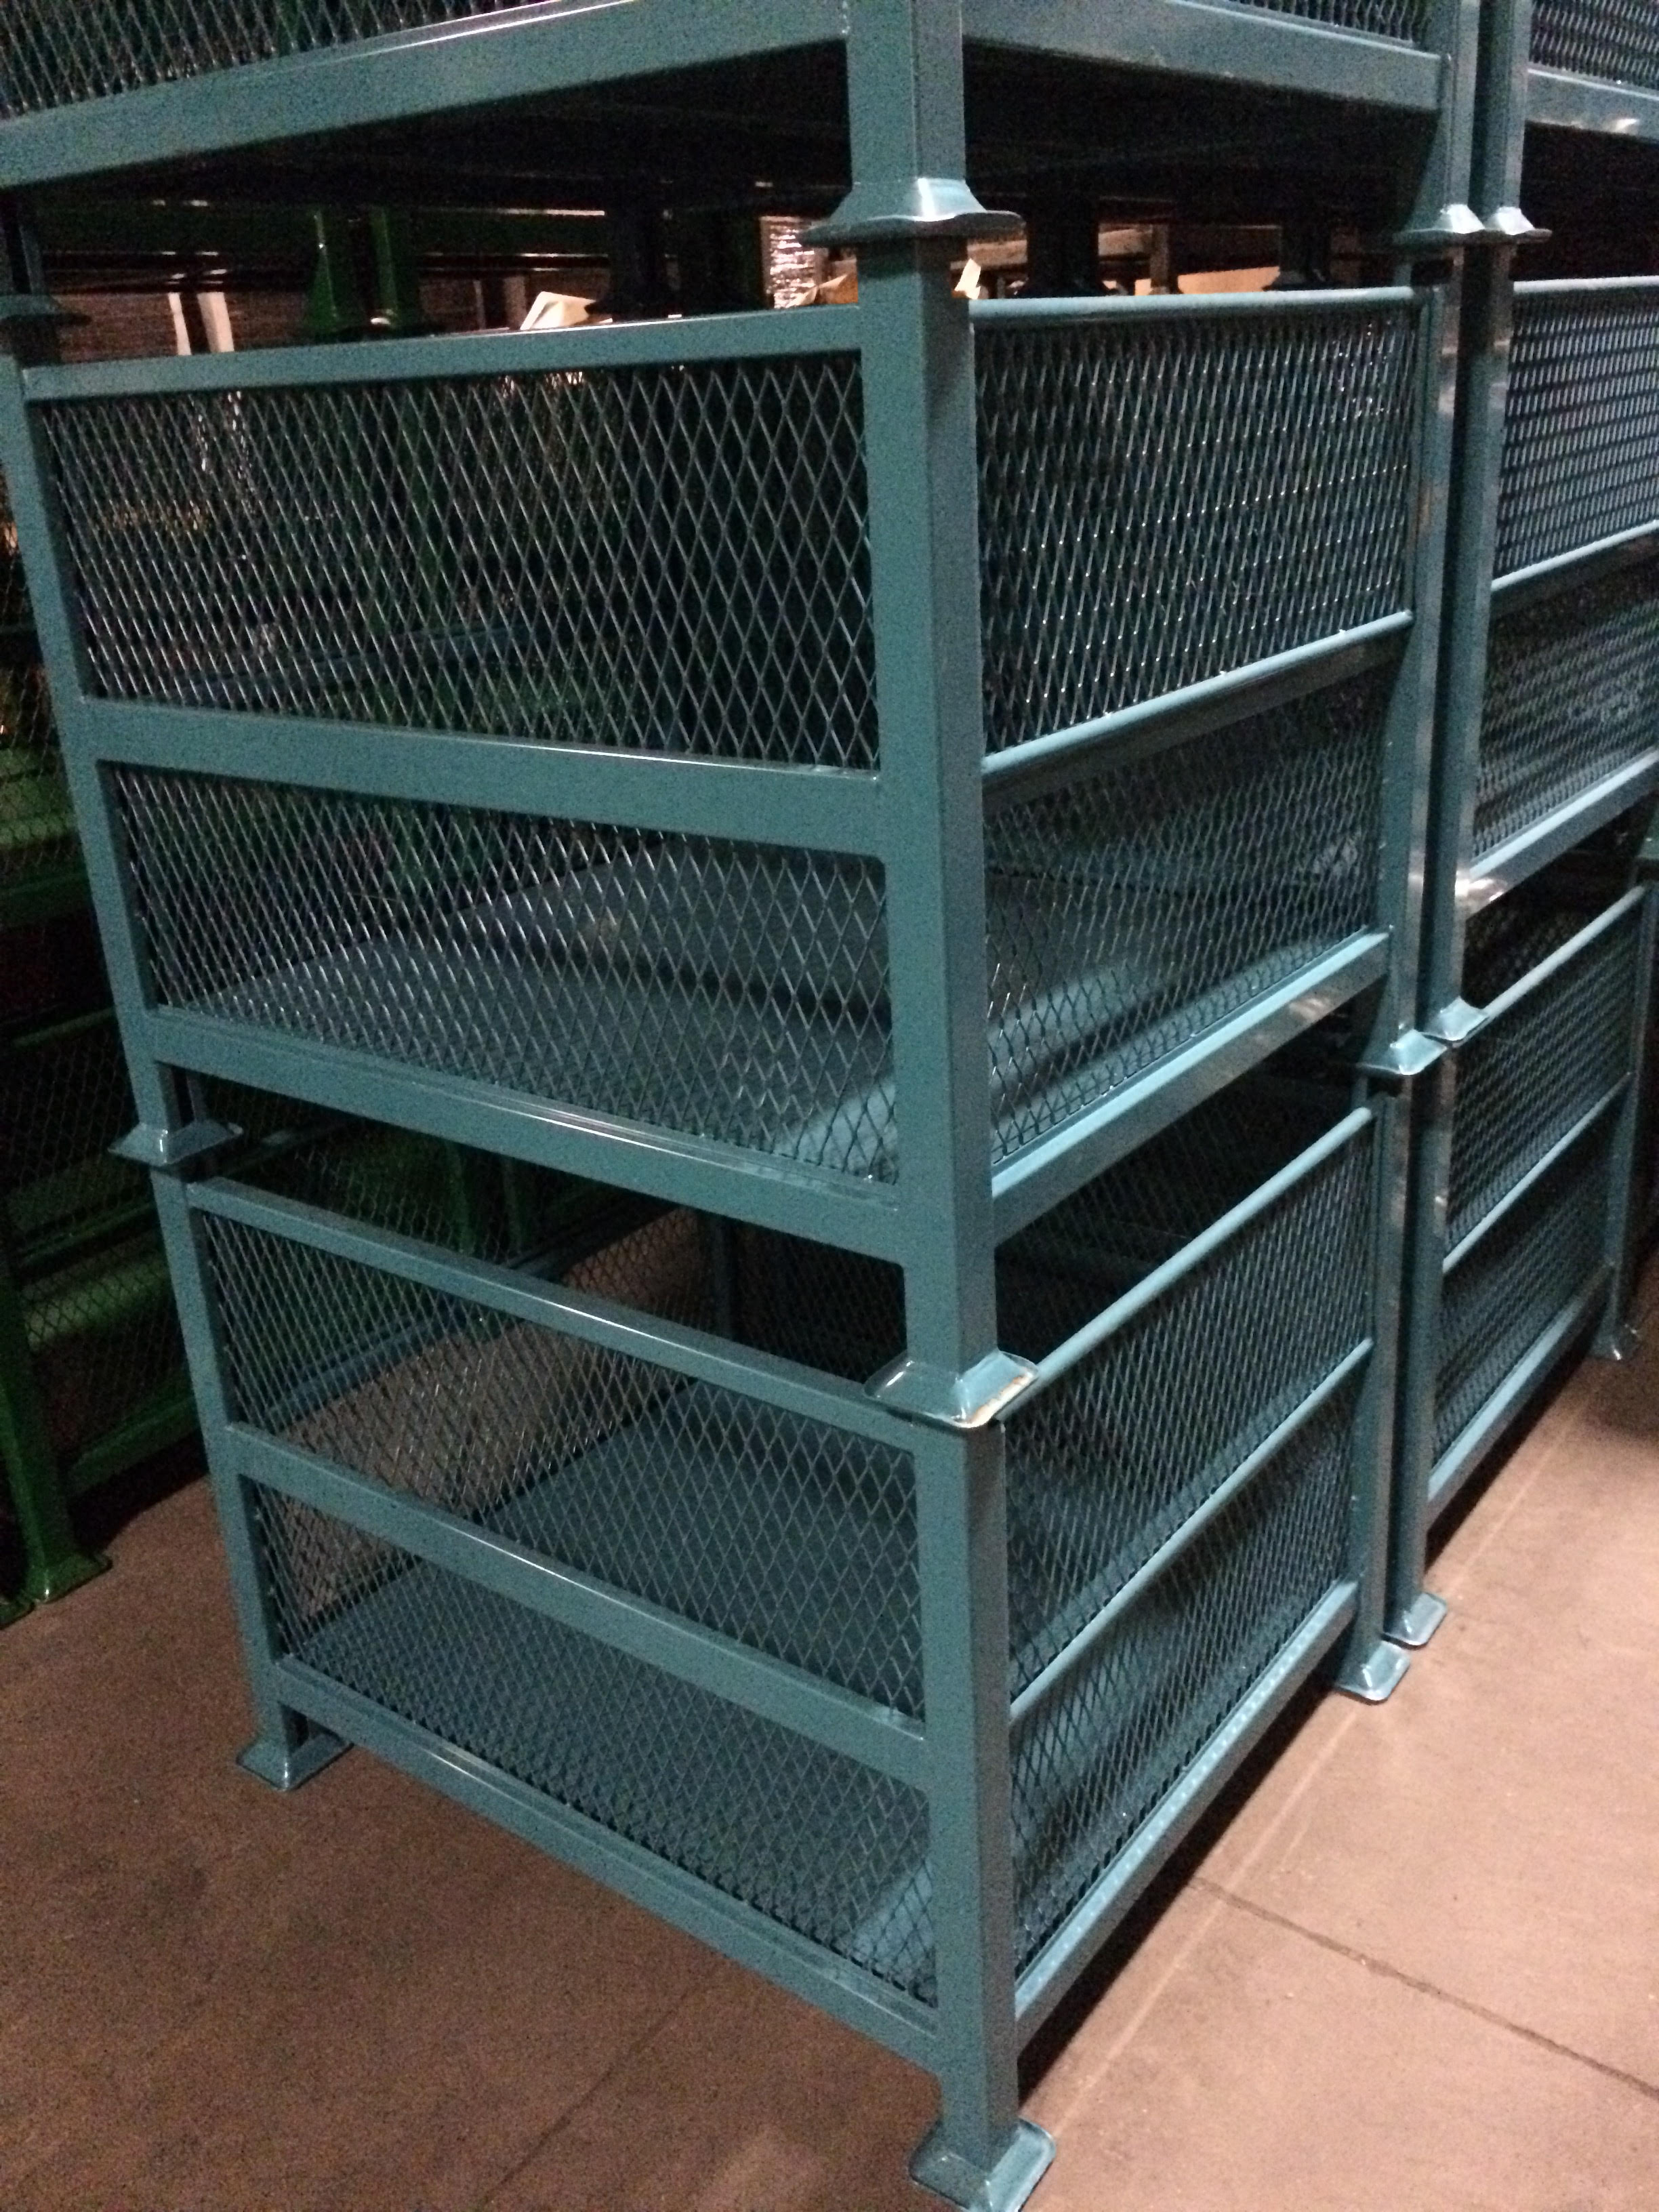 manufacturer duty angle storage slotted supplier india wholesaler ware htm cantilever housing rack equipments medium racks light